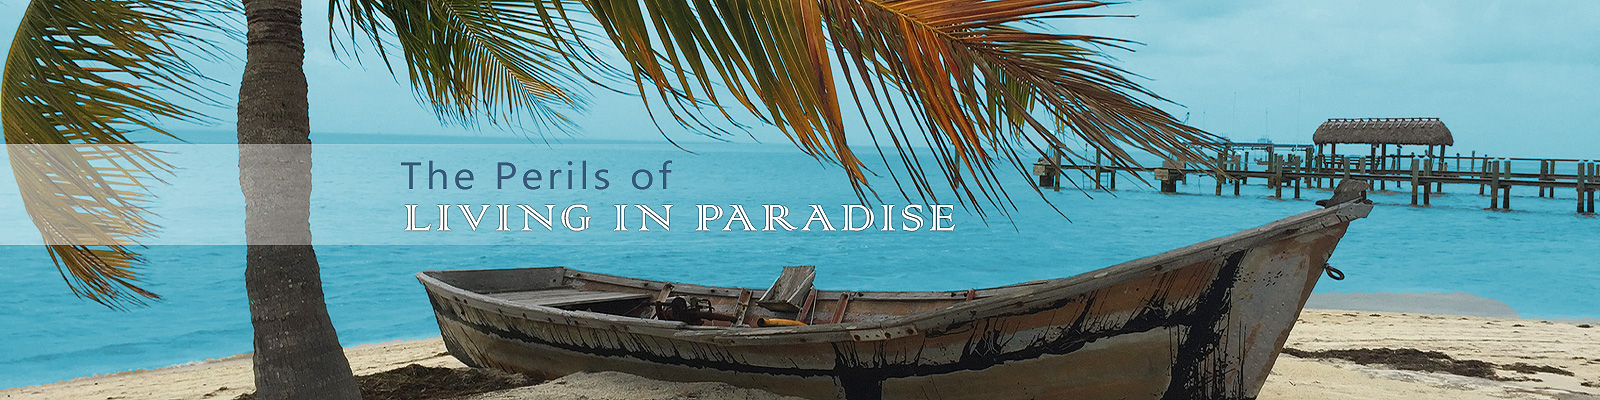 The Perils of Living in Paradise